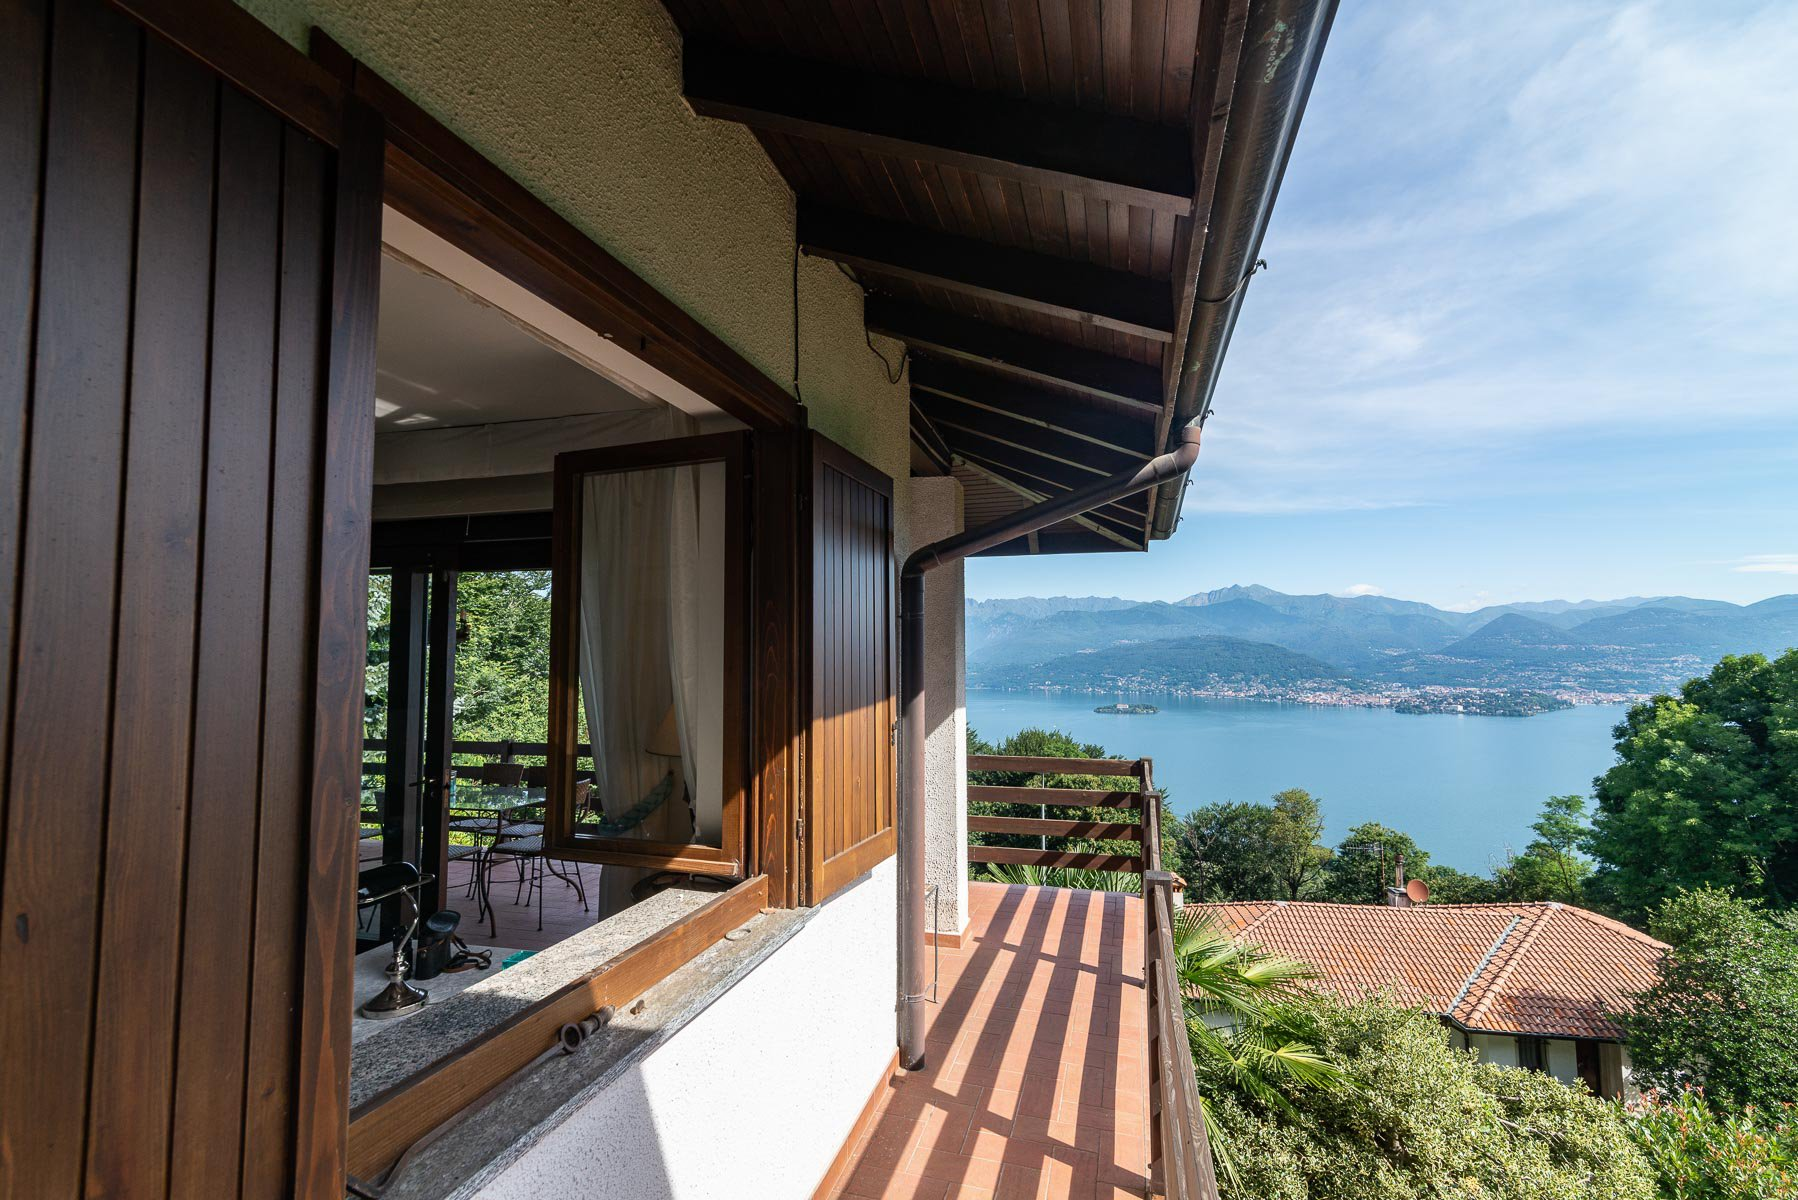 villa for sale on the hill of Stresa with lake view- external facade